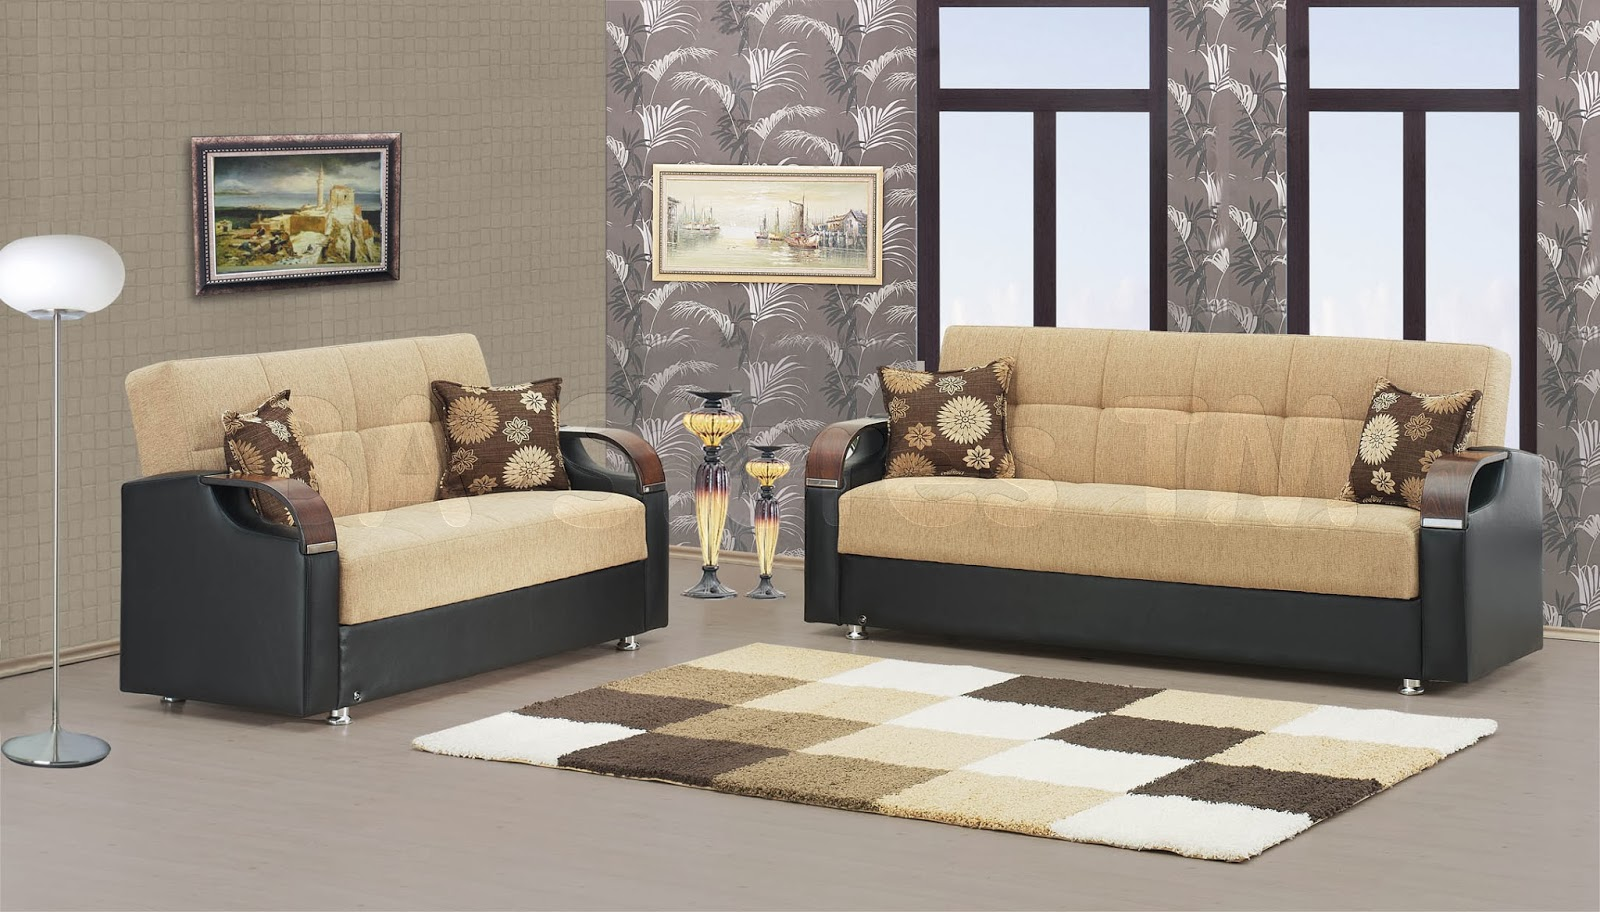 Living room design with leather sofa living room Sofa set designs for home